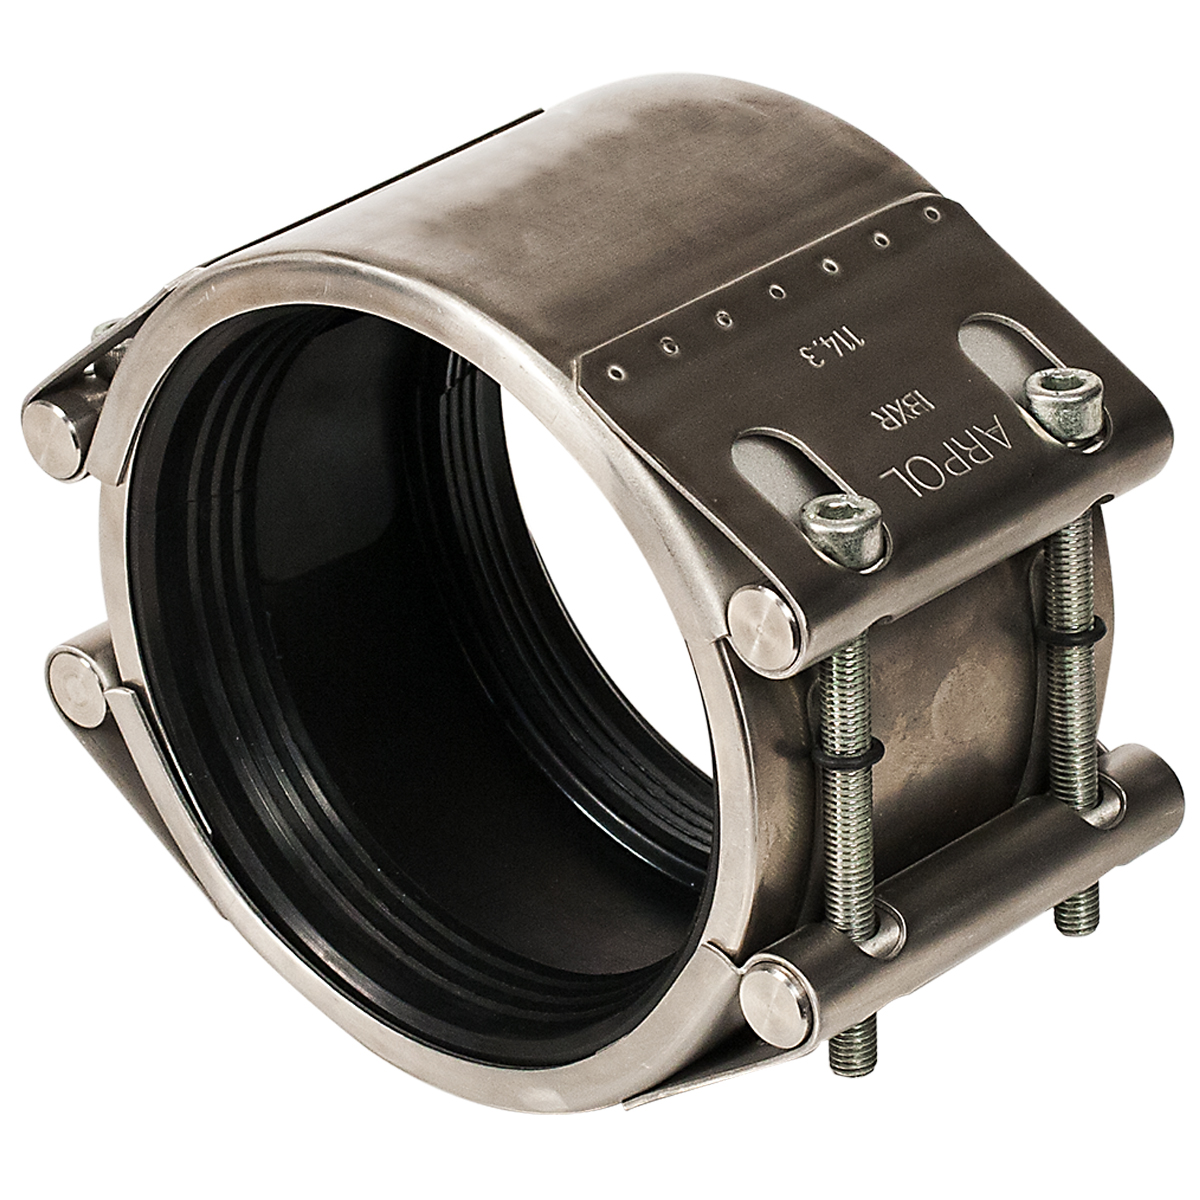 ARMOR SEAL - All stainless steel flexible repair clamp, also functions as a coupling